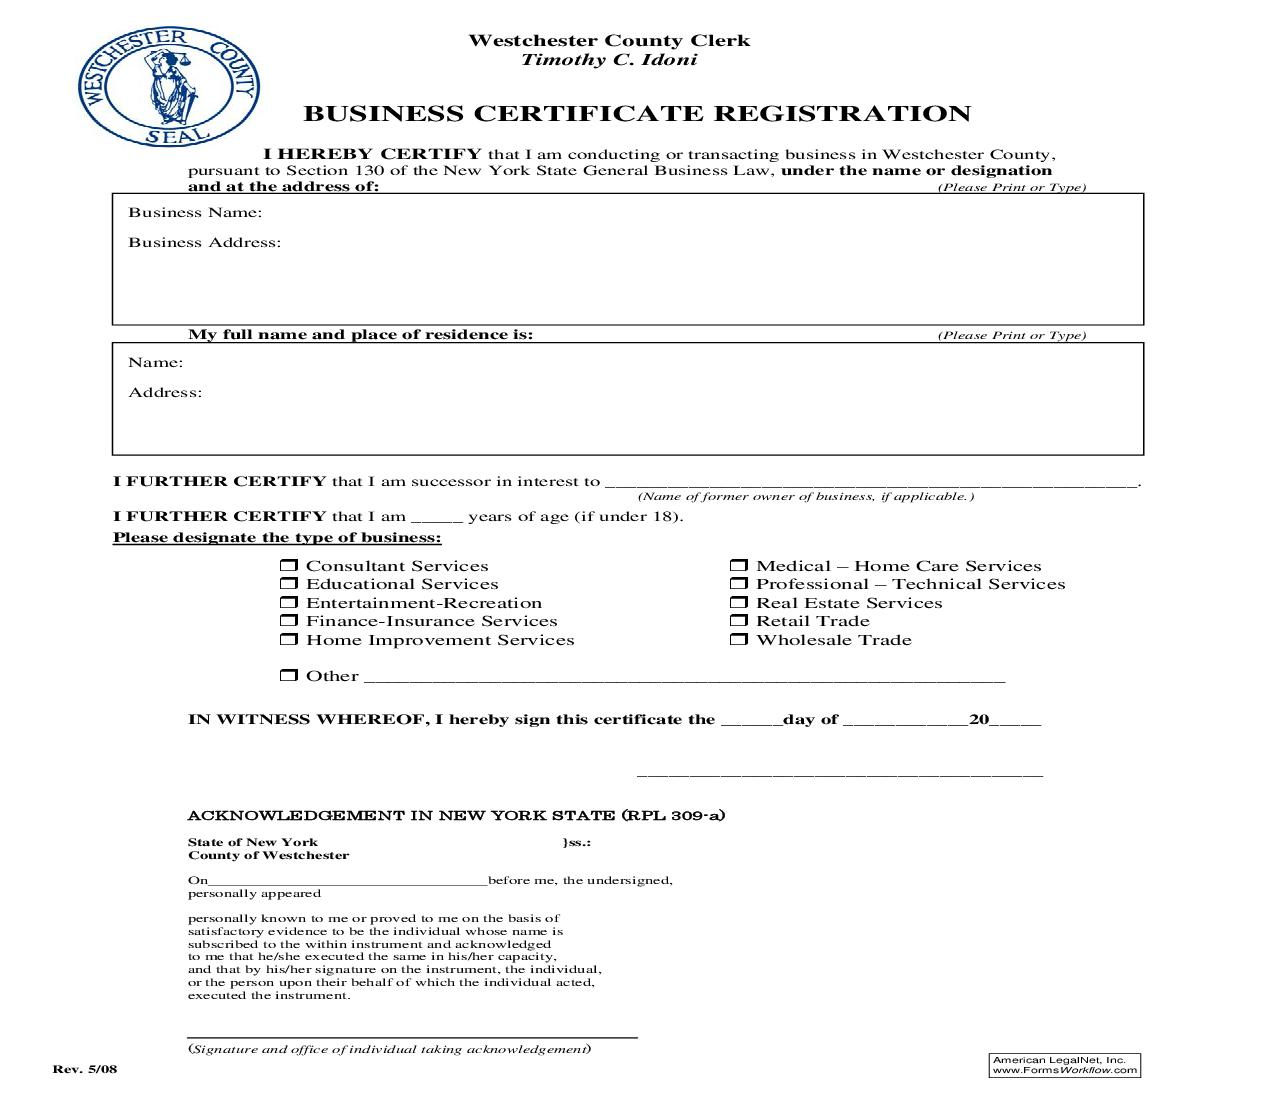 Business Certificate Registration | Pdf Fpdf Doc Docx | New York